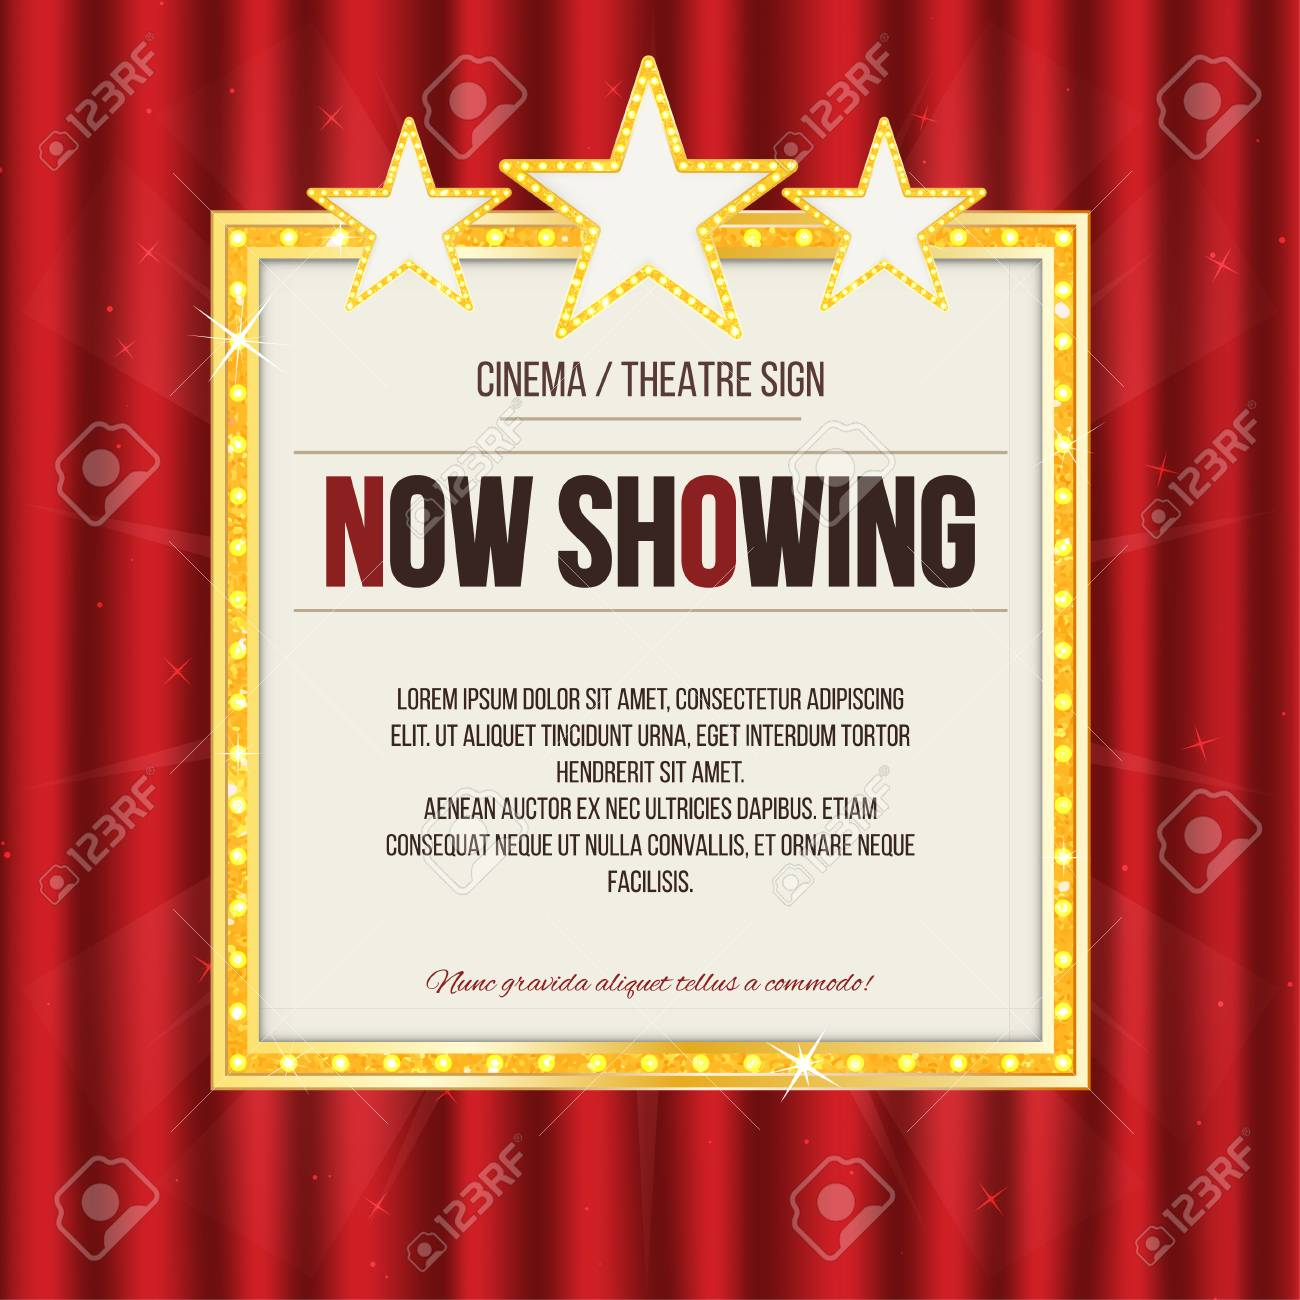 Theater sign or cinema sign with stars on red curtain. Gold retro signboard. Vector - 81570390